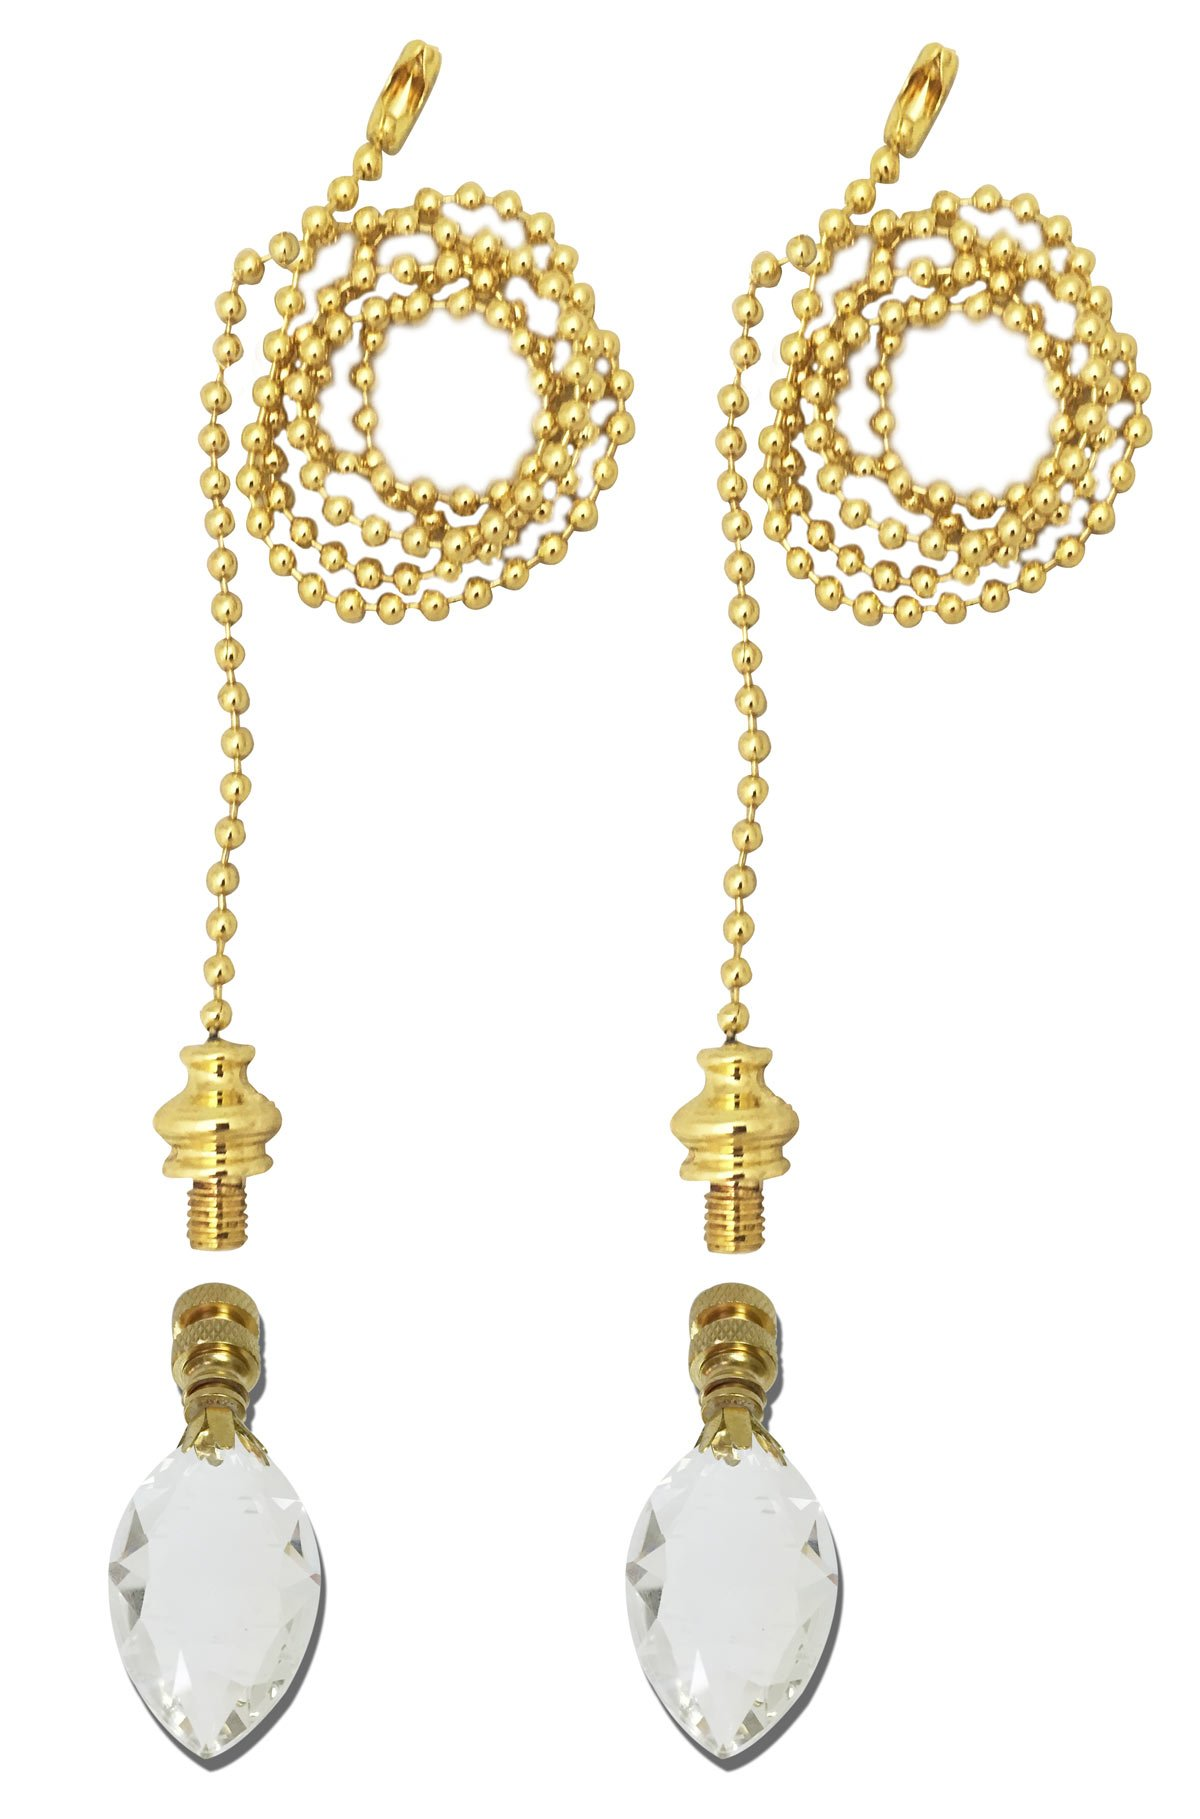 Royal Designs Fan Pull Chain with Pear Shaped Crystal Finial - Polished Brass - Set of 2